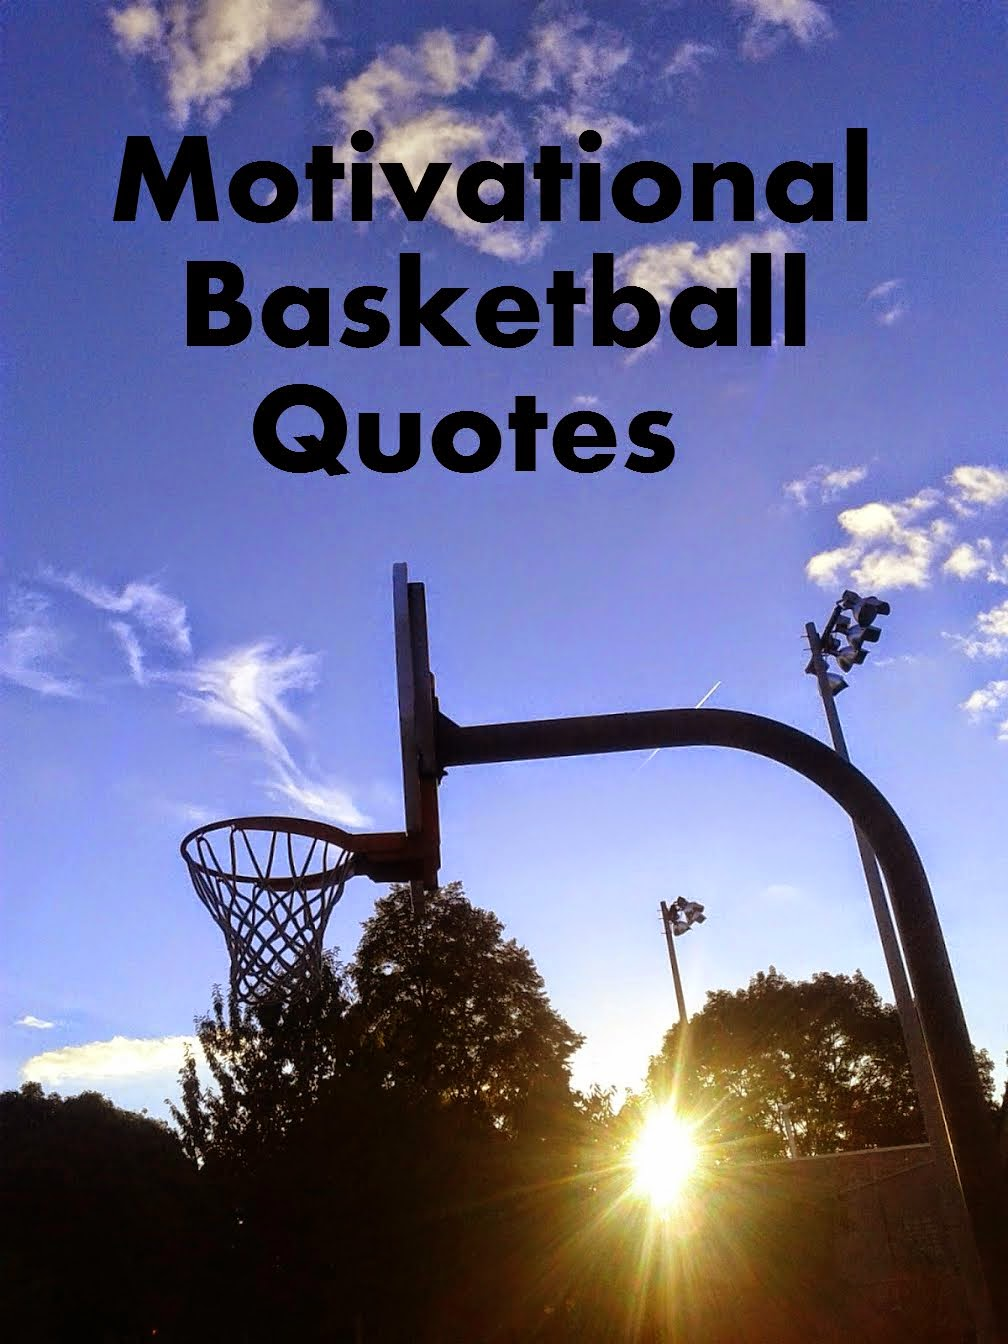 Inspirational Quotes Motivation: Inspirational Basketball Quotes And Sayings. QuotesGram